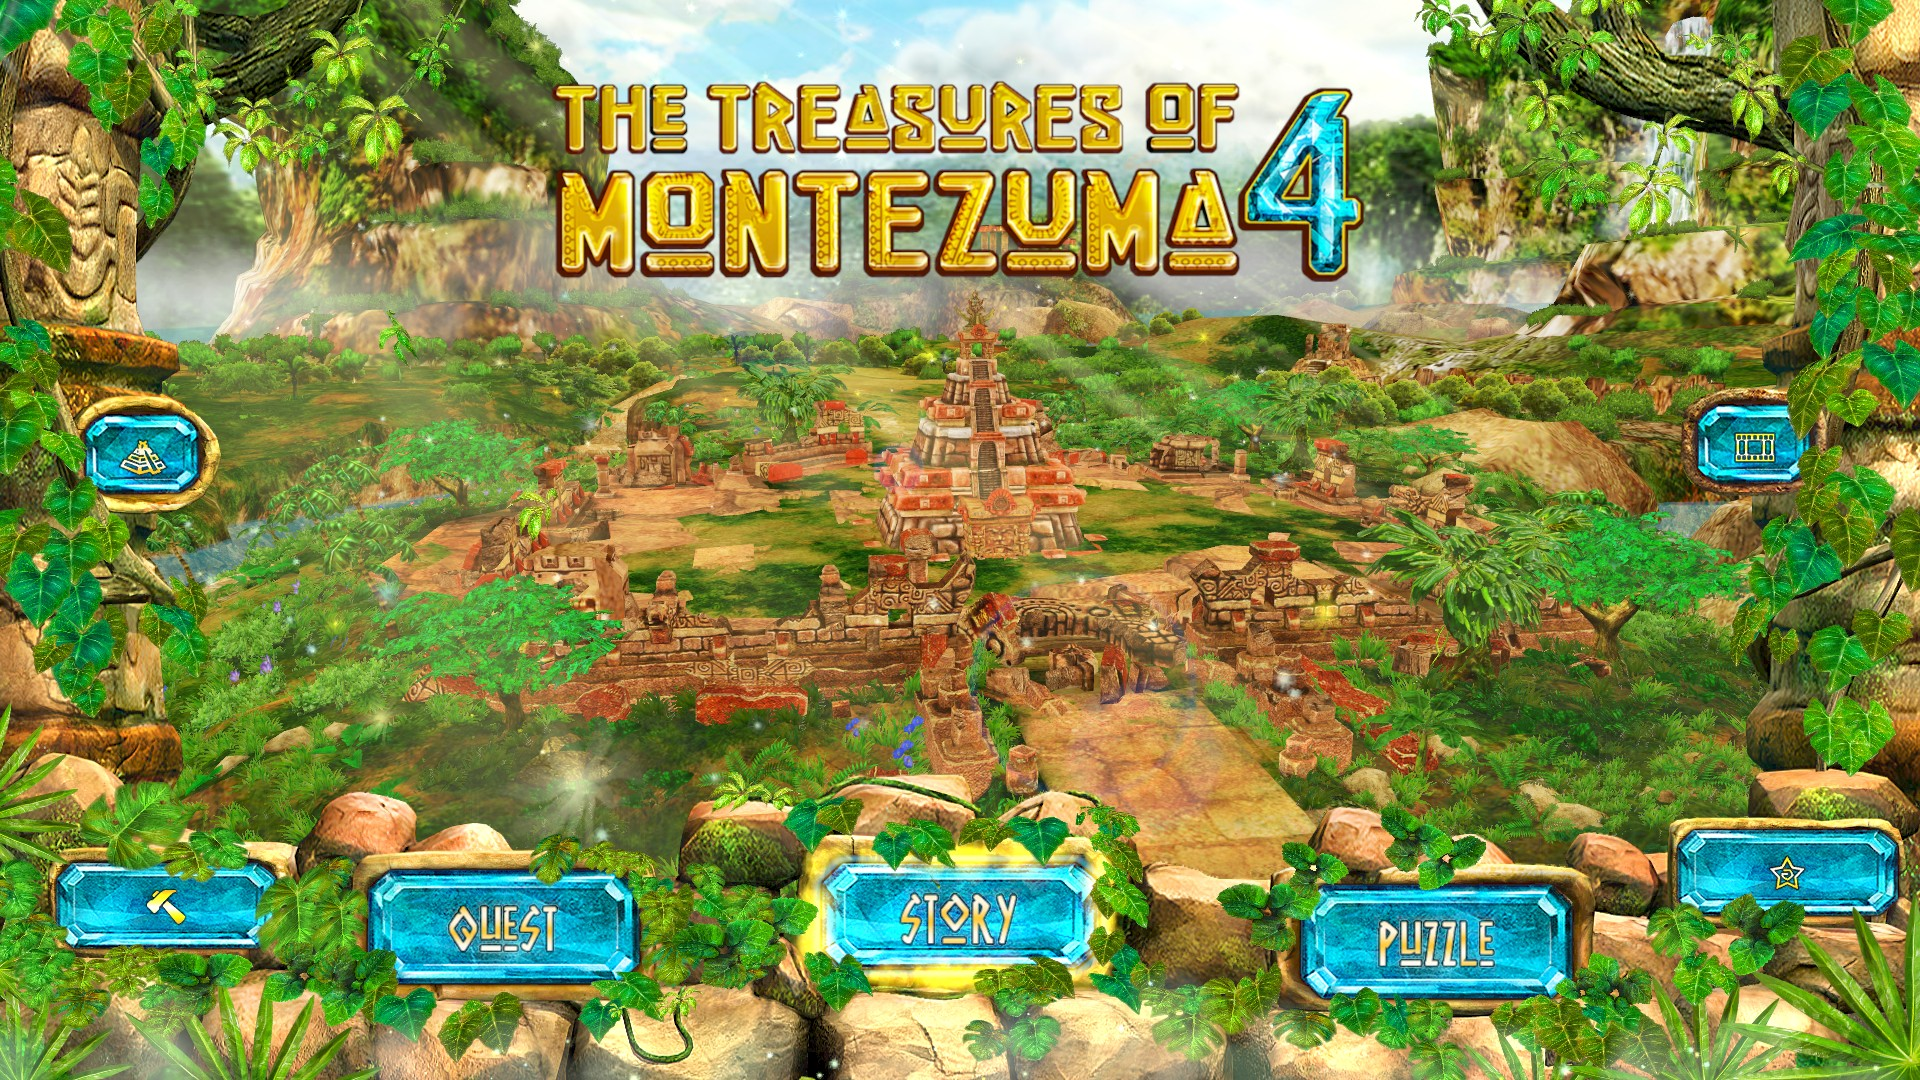 The Treasures of Montezuma 4_body_2